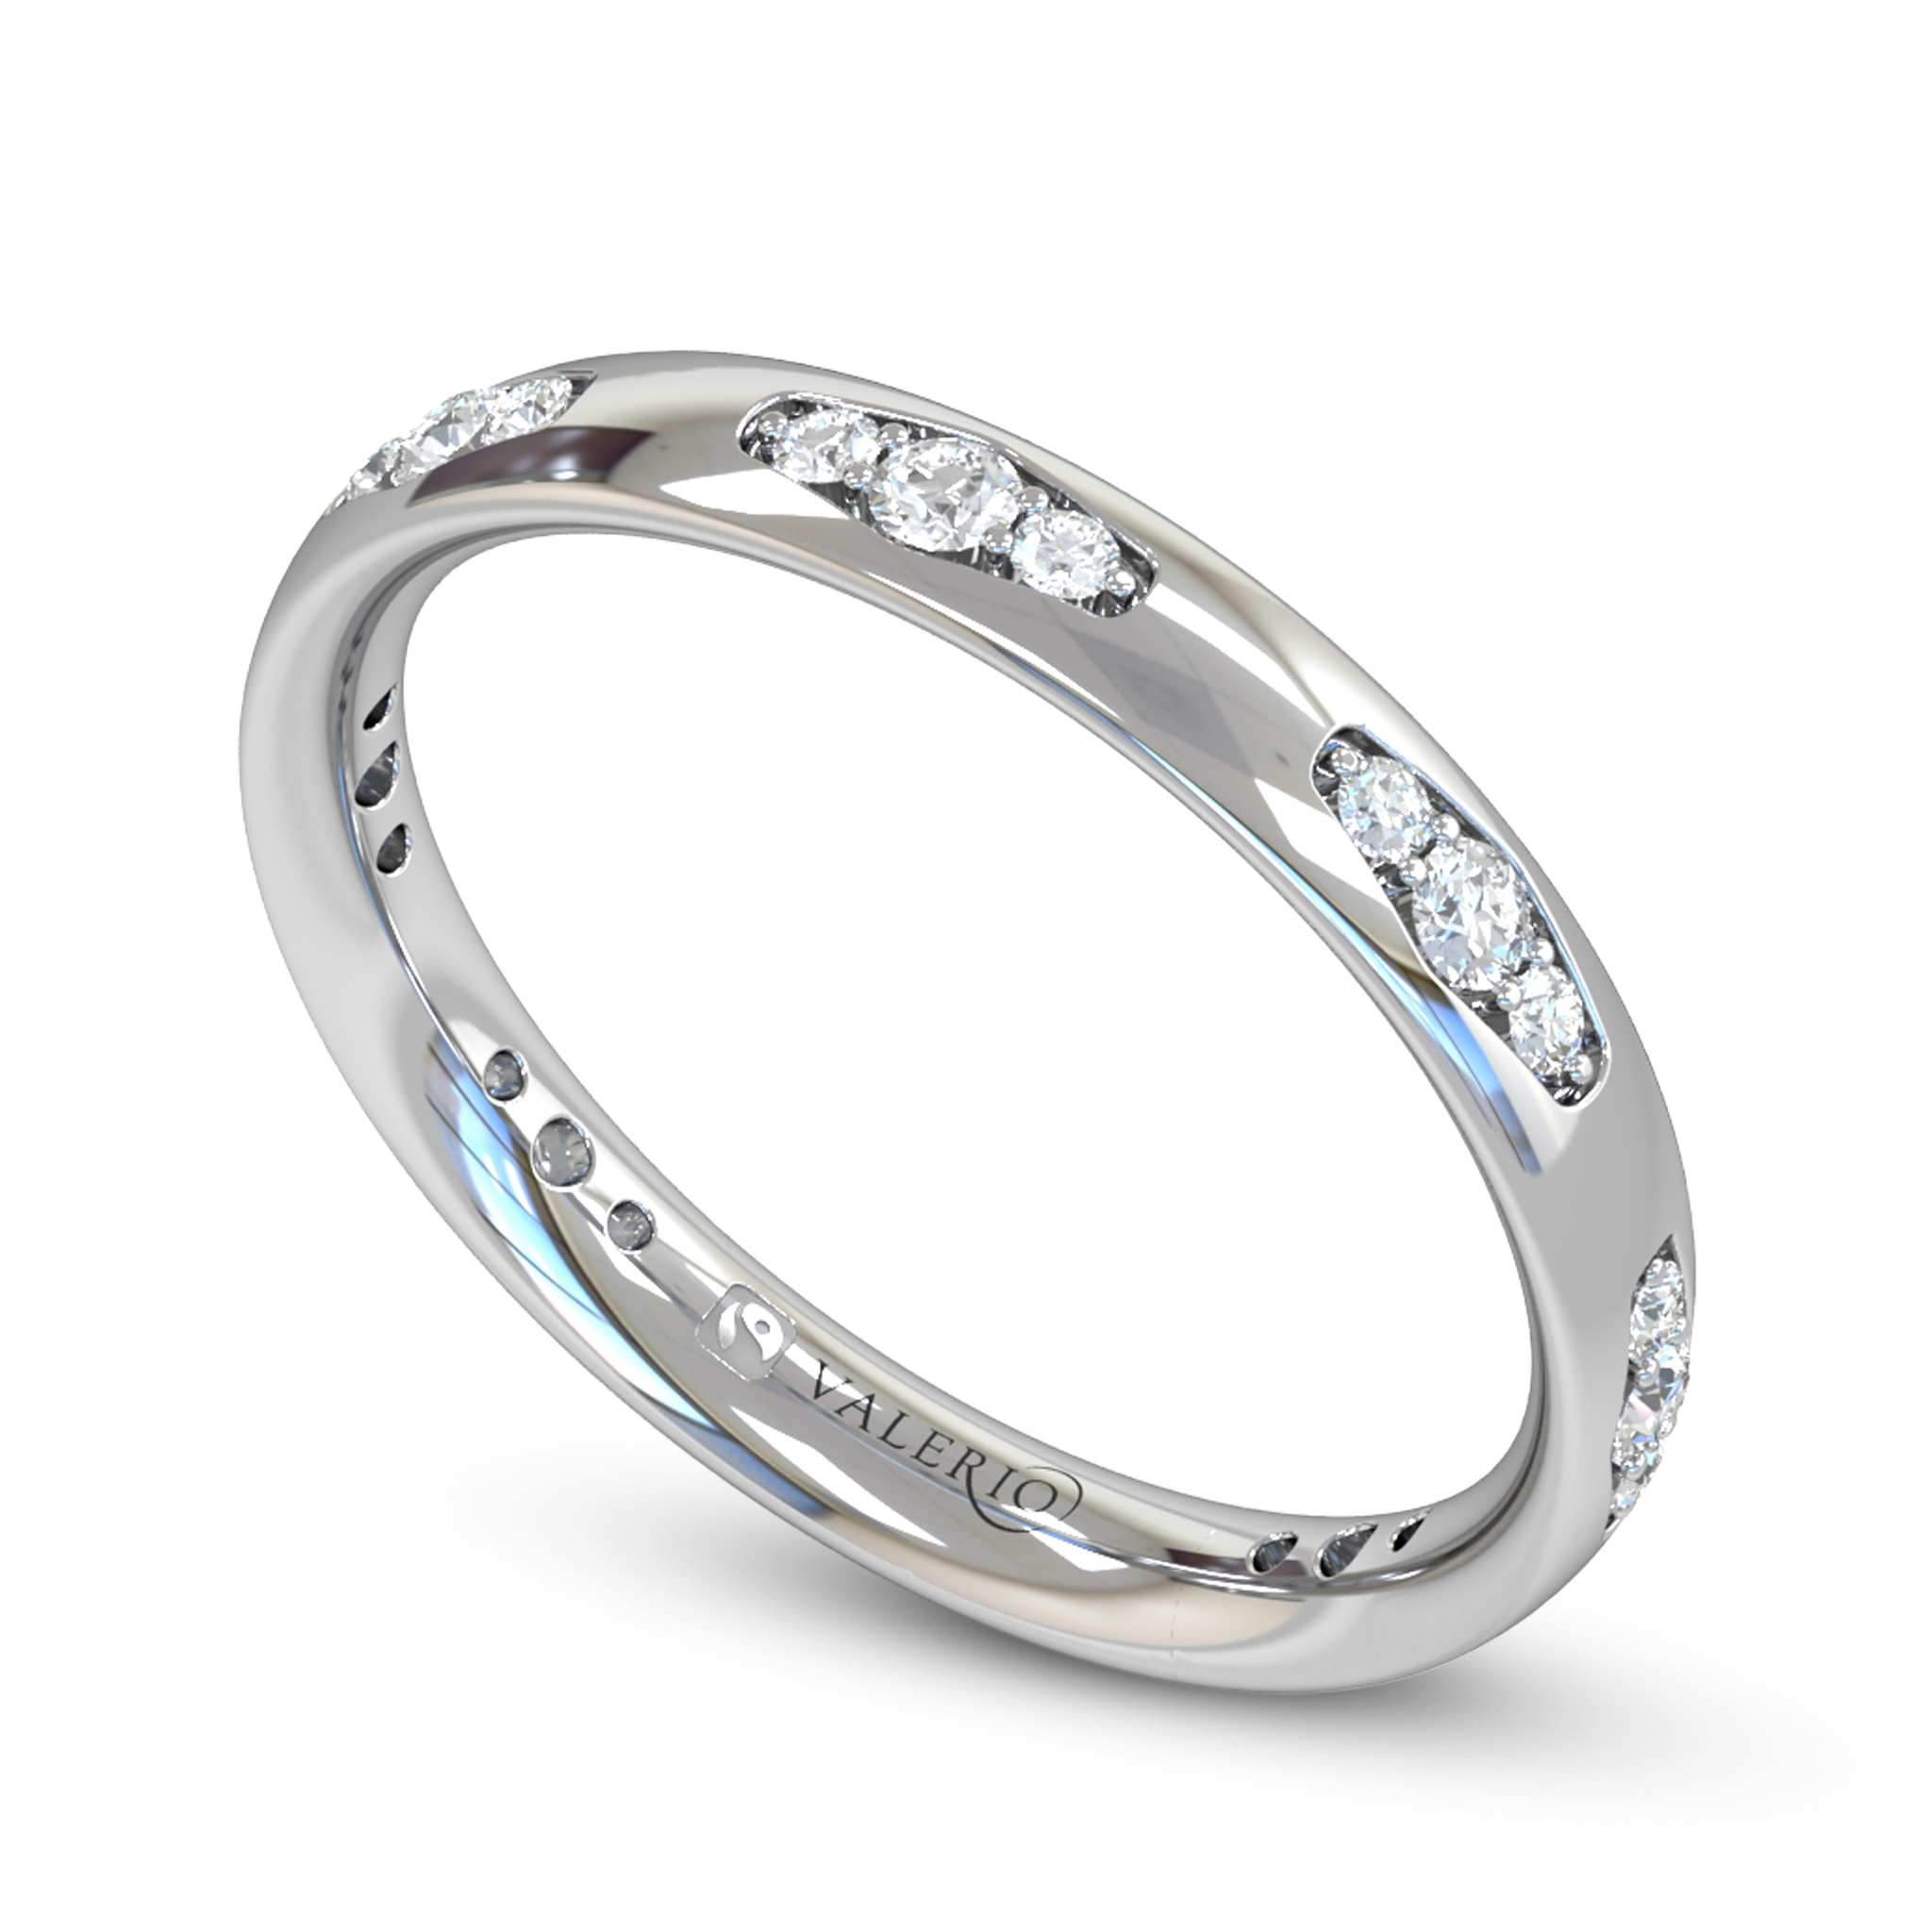 Womens Wedding Rings 15 Key Points You Must Know Before Purchasing